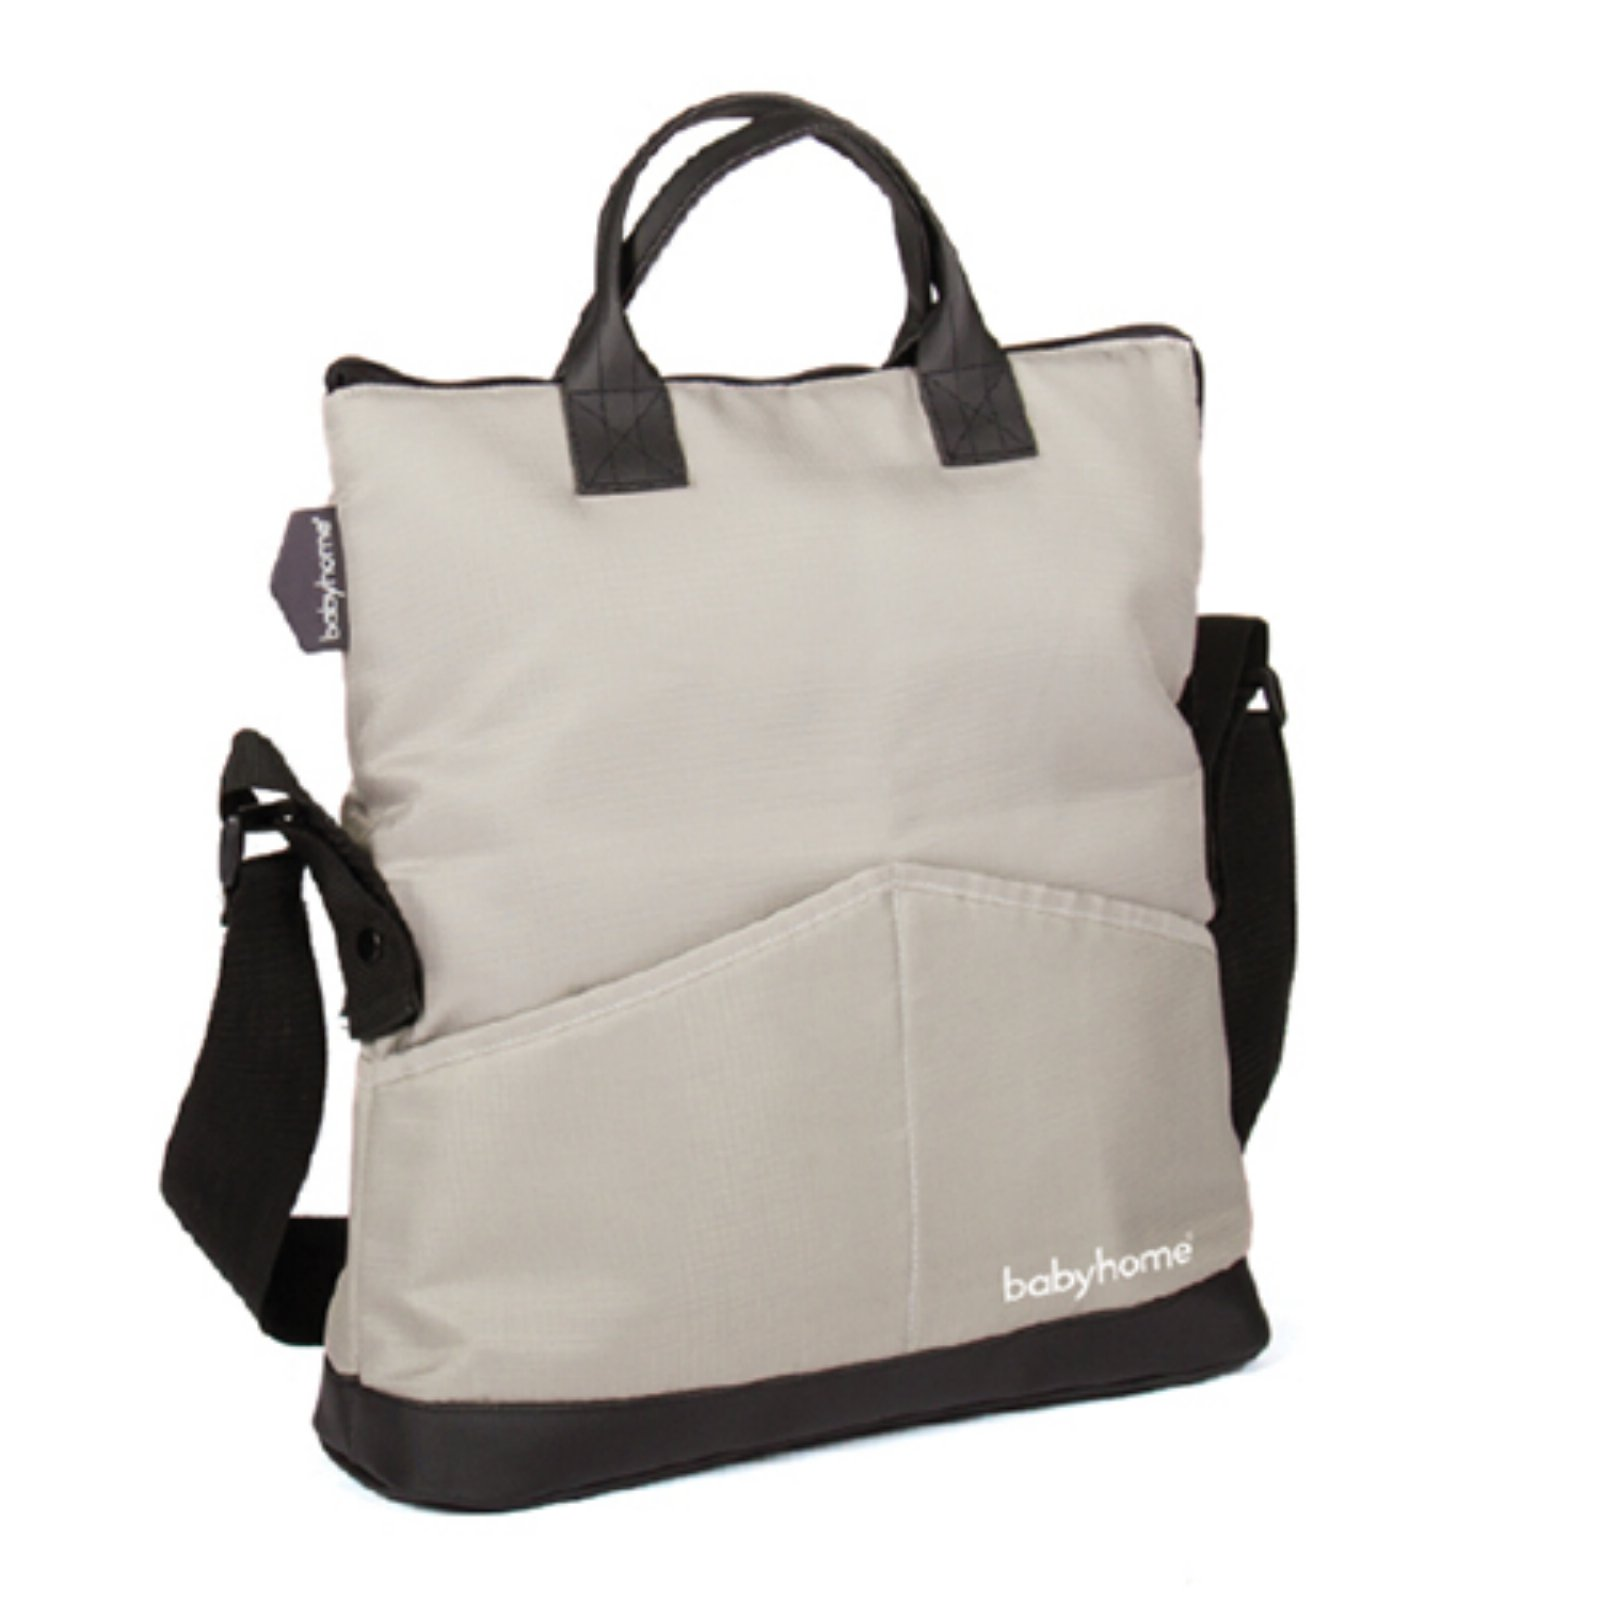 Babyhome Emotion Trendy Diaper Bag